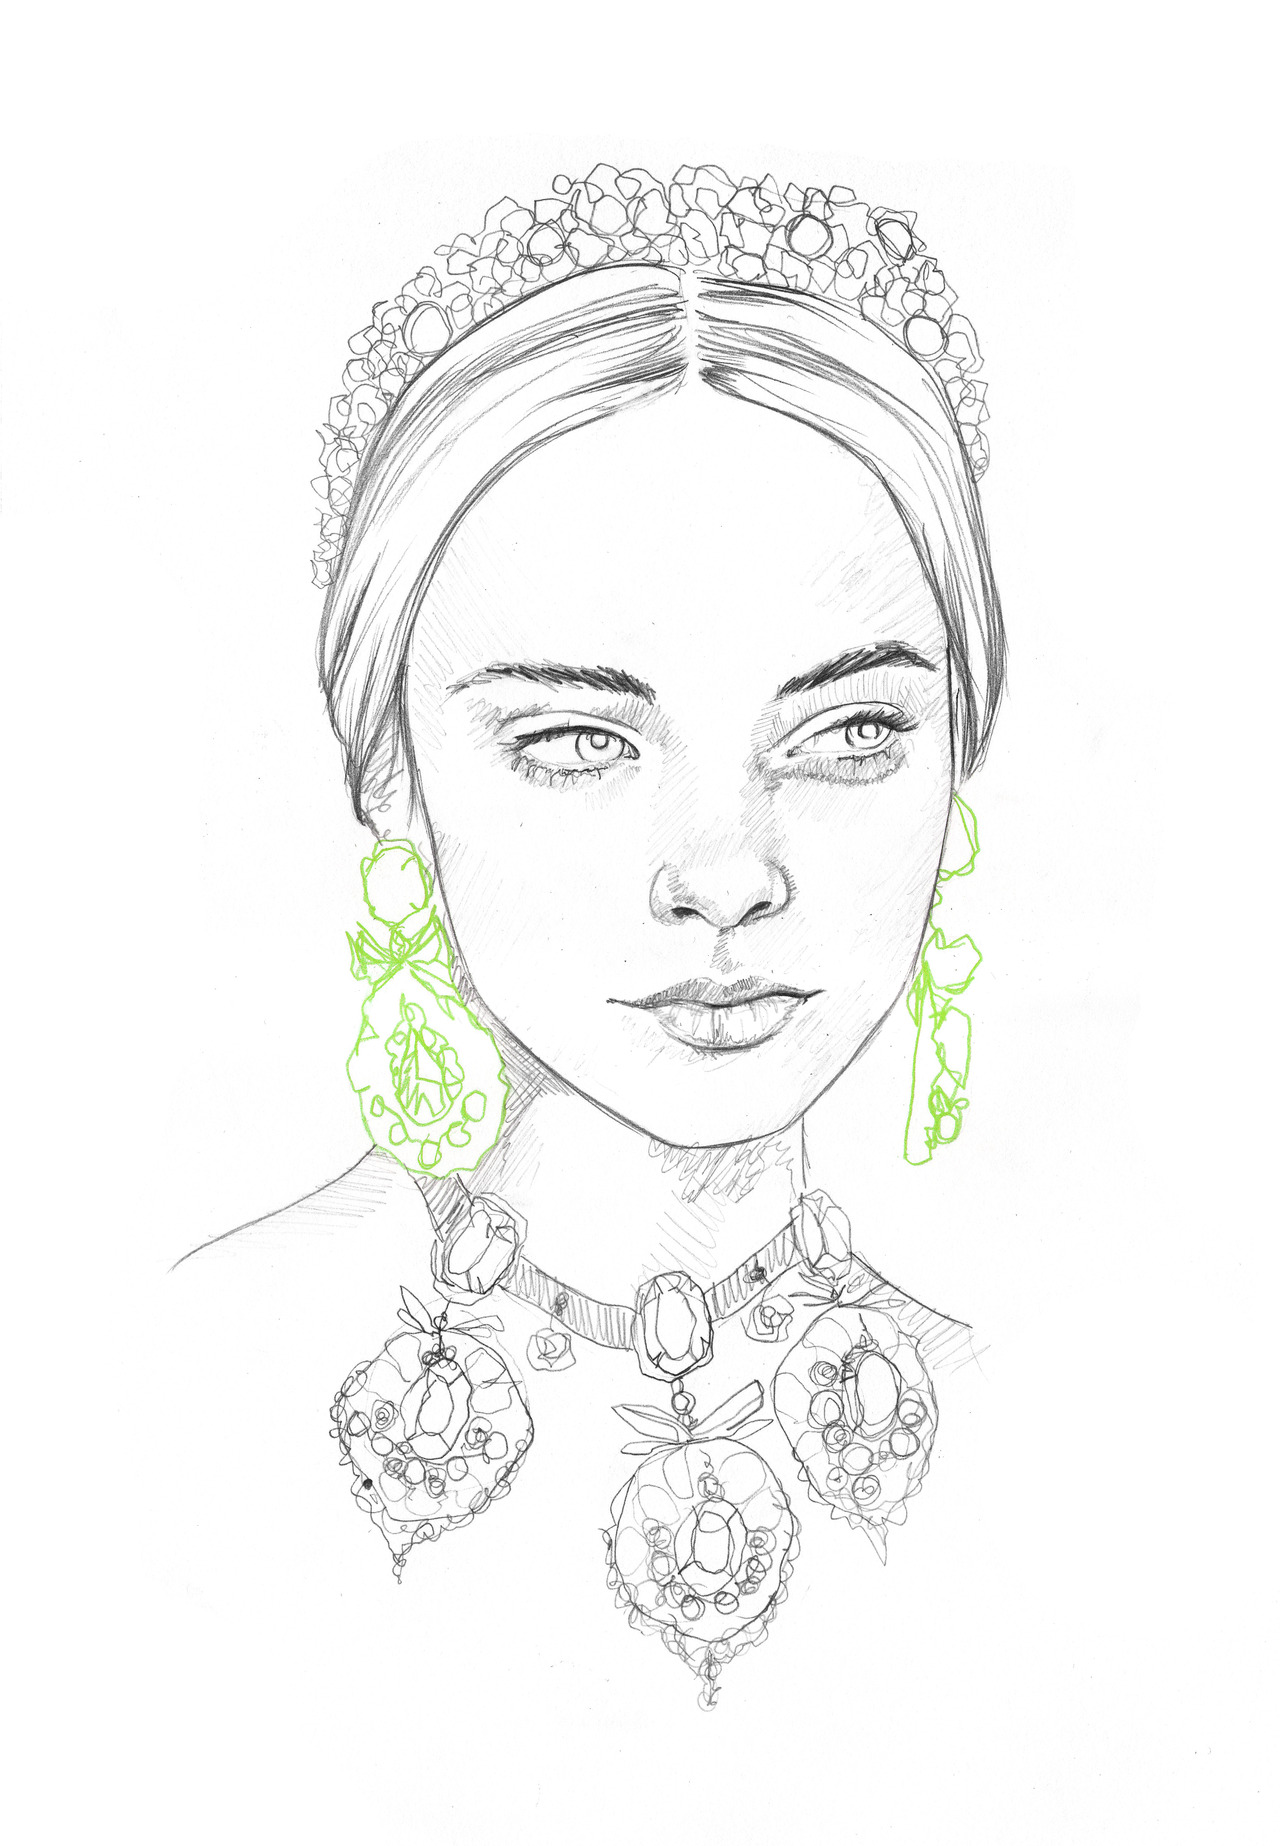 rosaliekateillustration: 20 minute sketch 30/09/12 Dolce & Gabanna Fall 2012